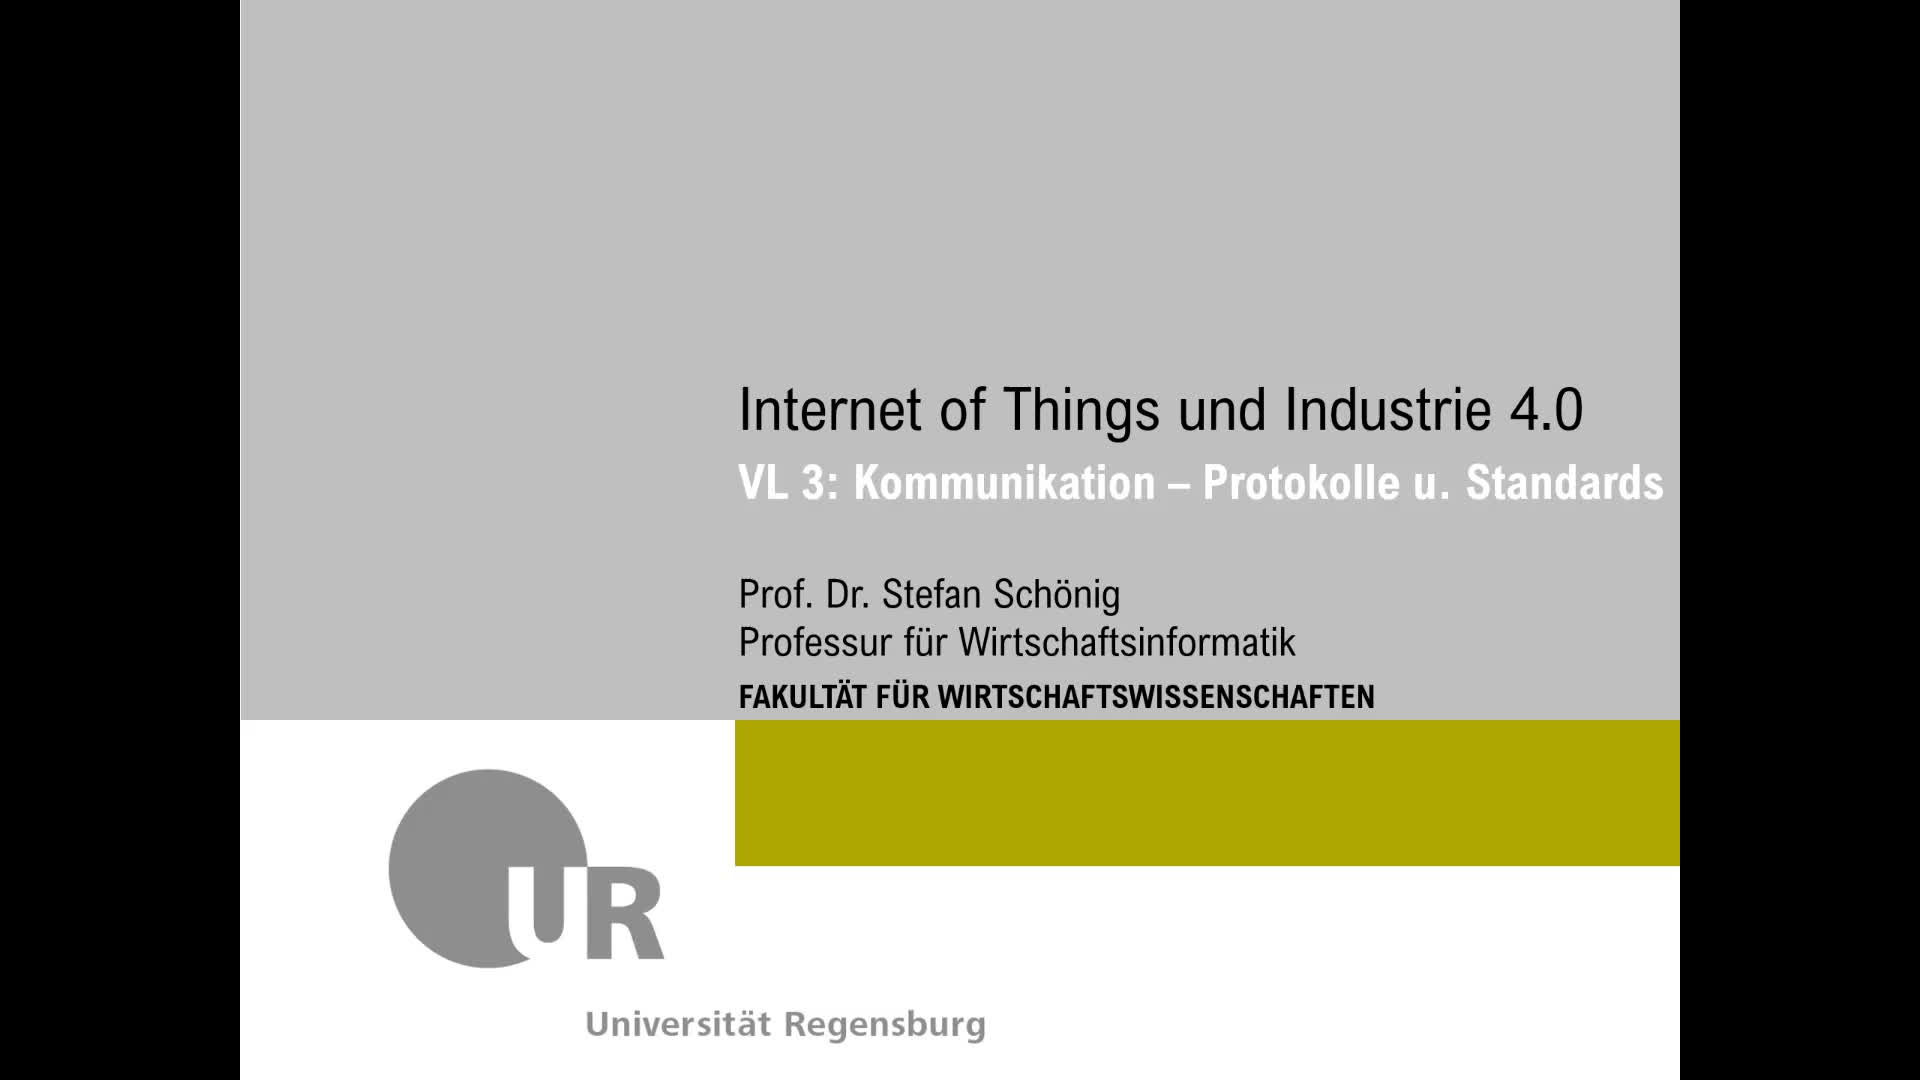 SS 2020 - Internet of Things und Industrie 4.0 - Kapitel 3 (Protokolle - Anwendungsschicht)